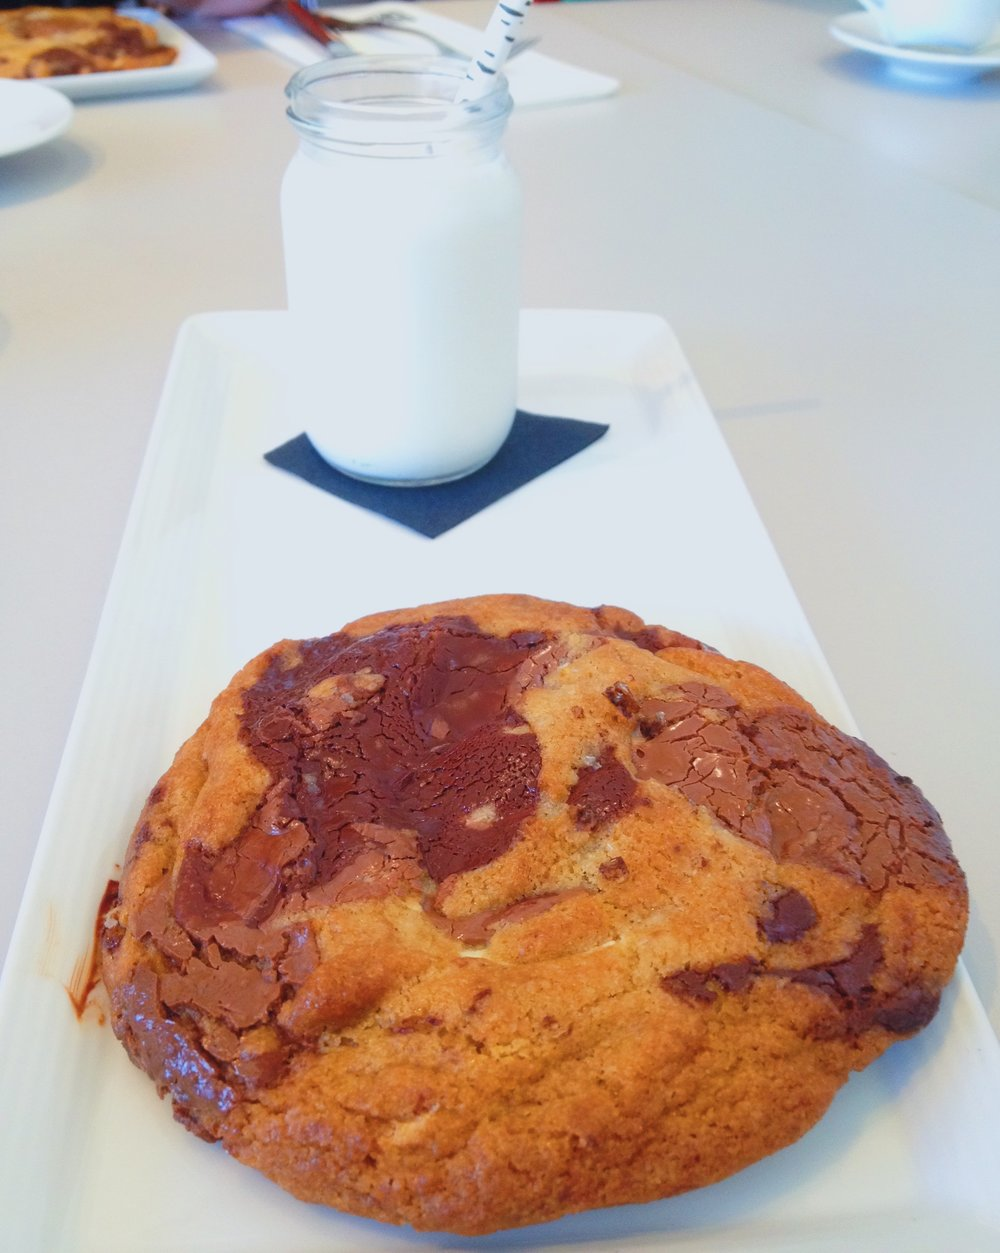 Today's breakfast is this triple-chocolate cookie at Untitled at the Whitney, which blows my mind every time. Pastry chef Miro Uskokovic uses @guittardchocolate, an American bean-to-bar brand that's been around since the late 1800s, and Chef Thomas Keller's gluten-free flour Cup4Cup.